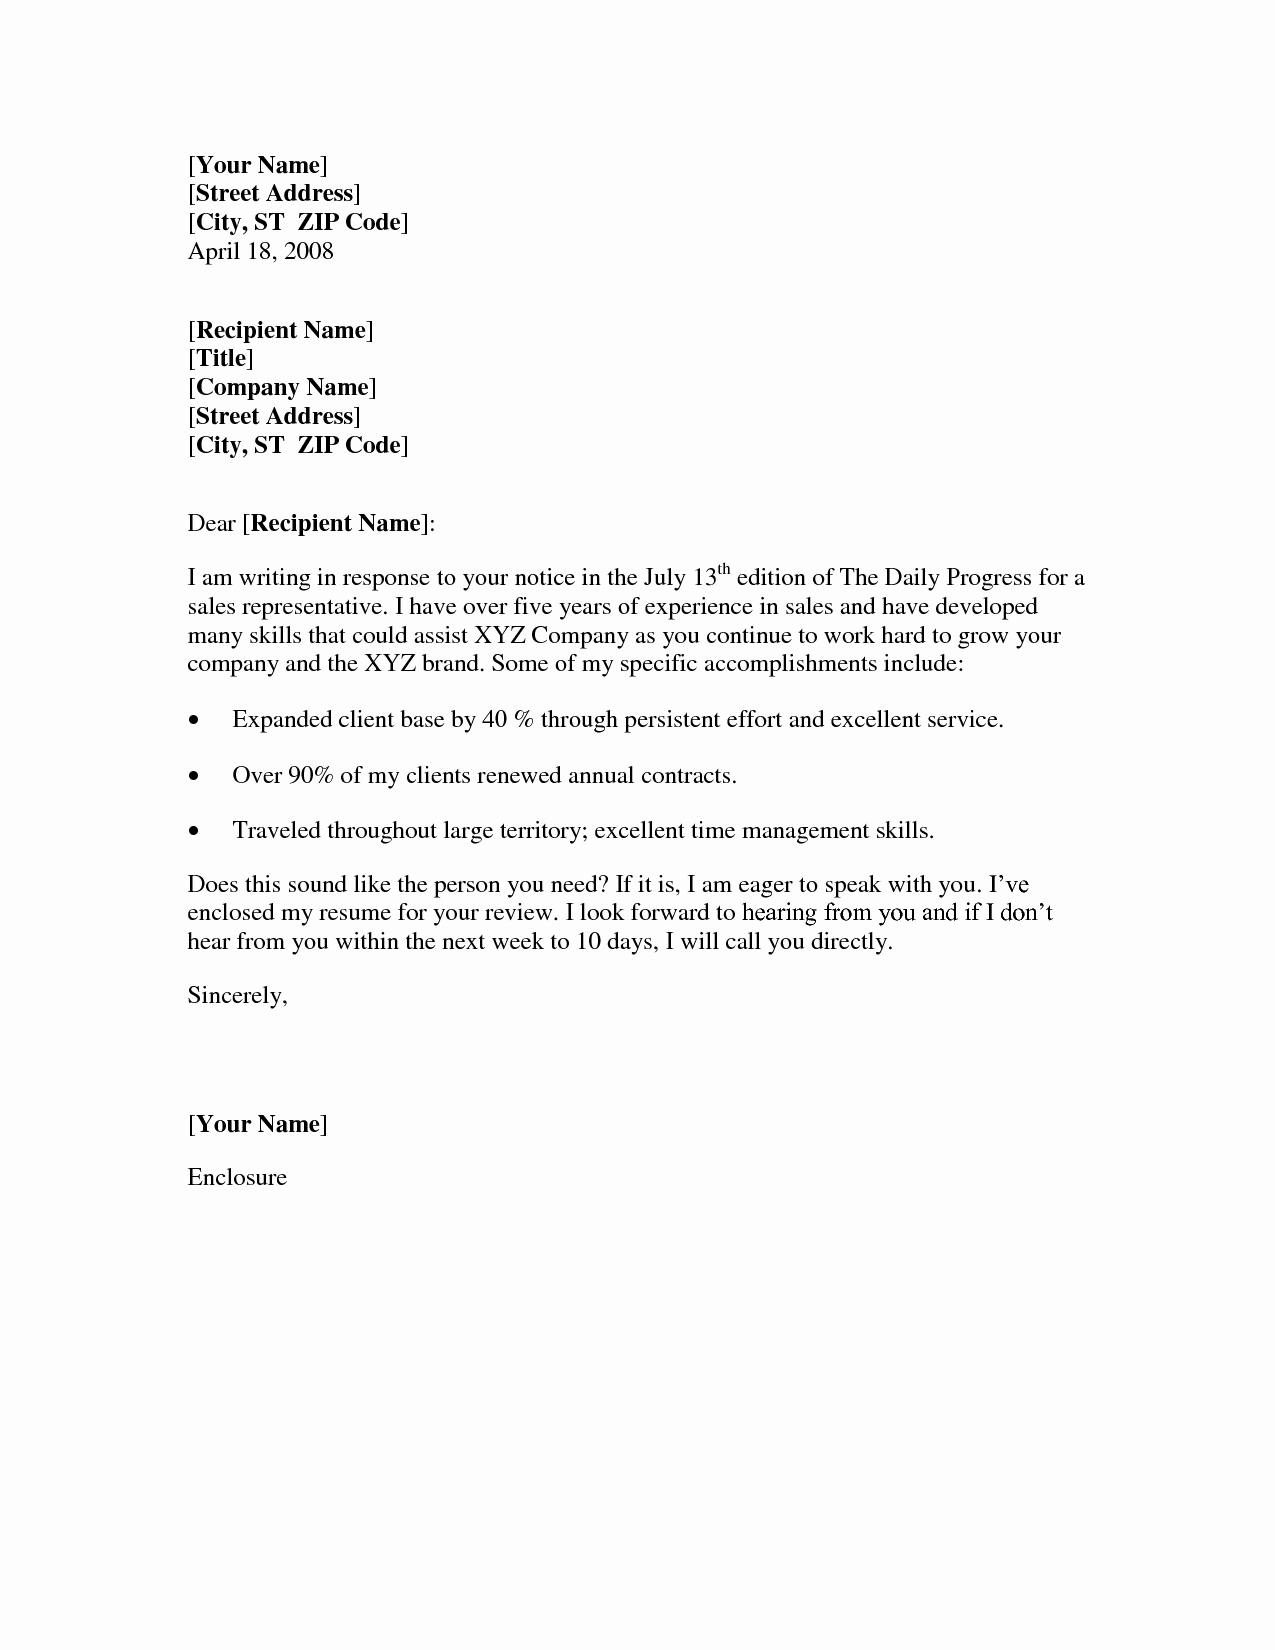 Simple Job Cover Letter Examples Fresh Simple Resume Cover Letter Samples Look for A Great Case